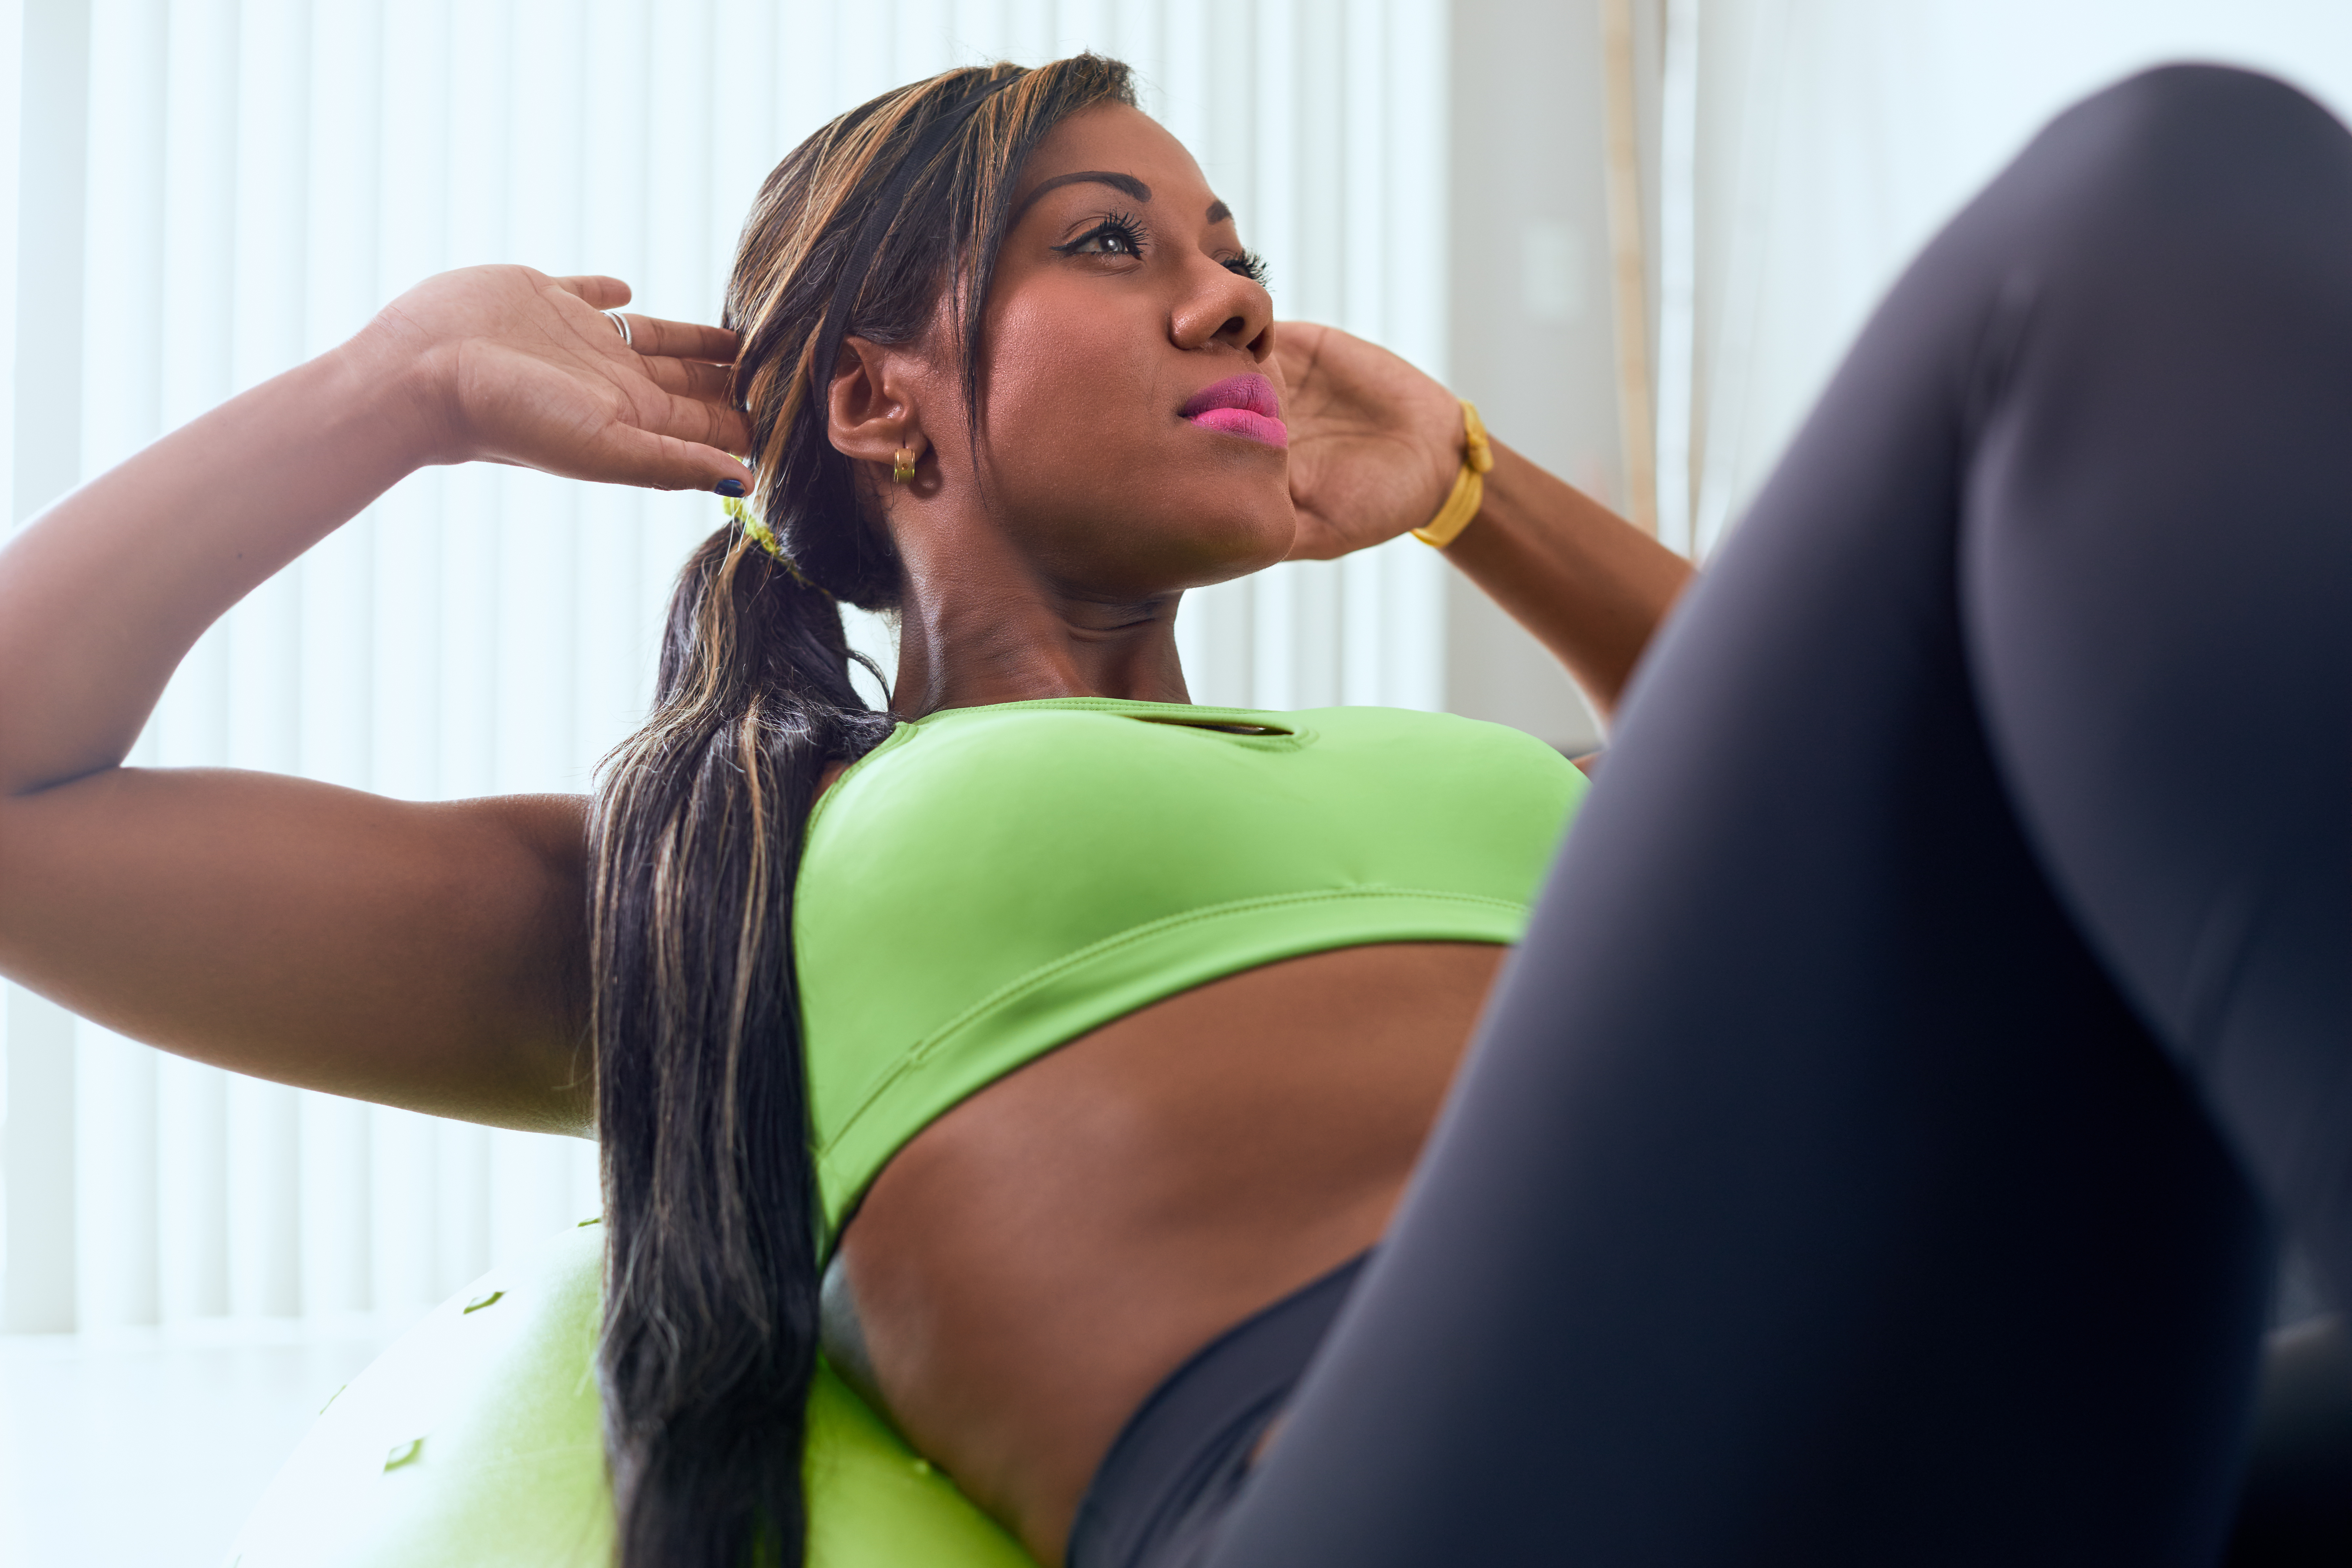 The Workout That Burns 346 Calories In 13 Minutes?